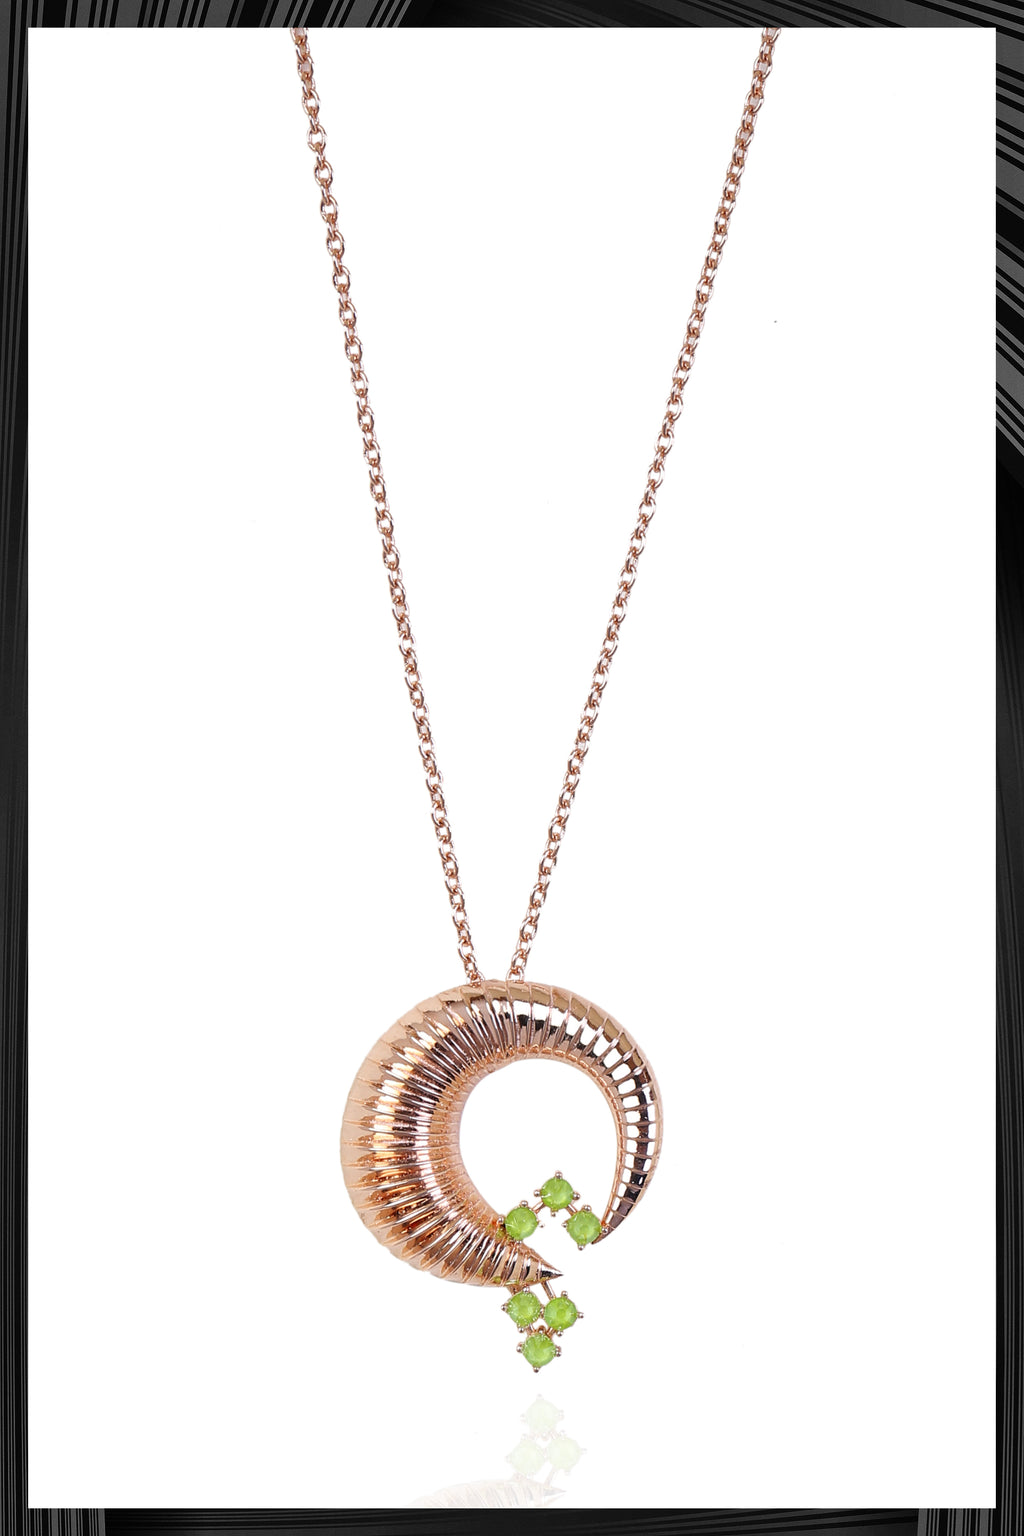 Green Moana Necklace | Free Delivery - Quick Shipping